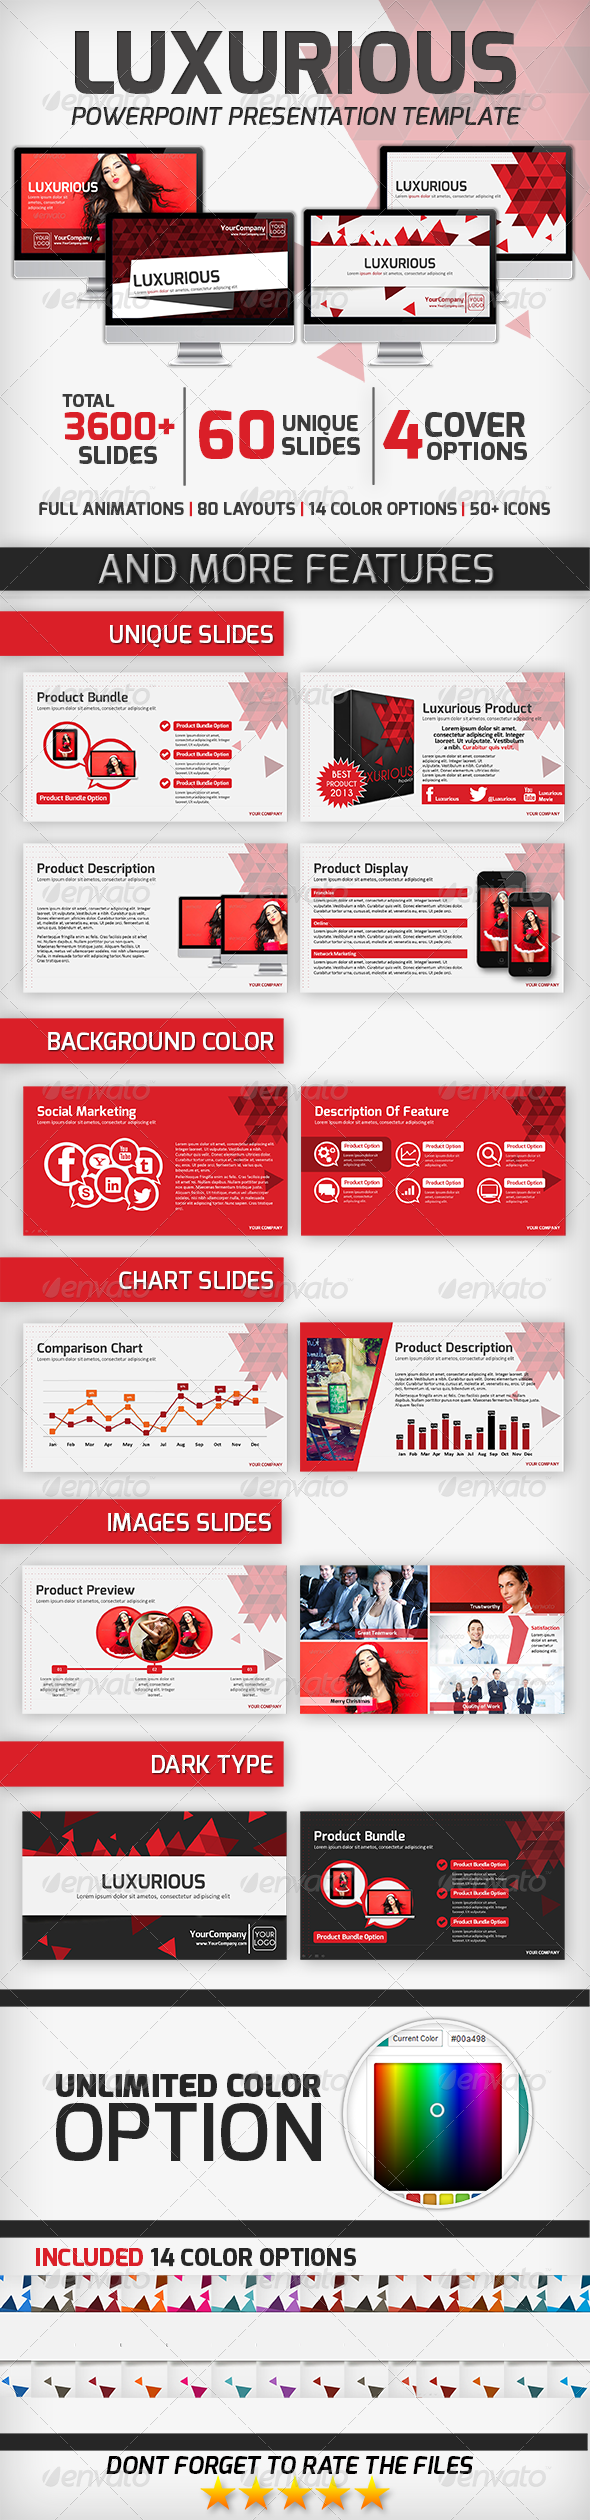 GraphicRiver Luxurious PowerPoint Presentation Template 6284311